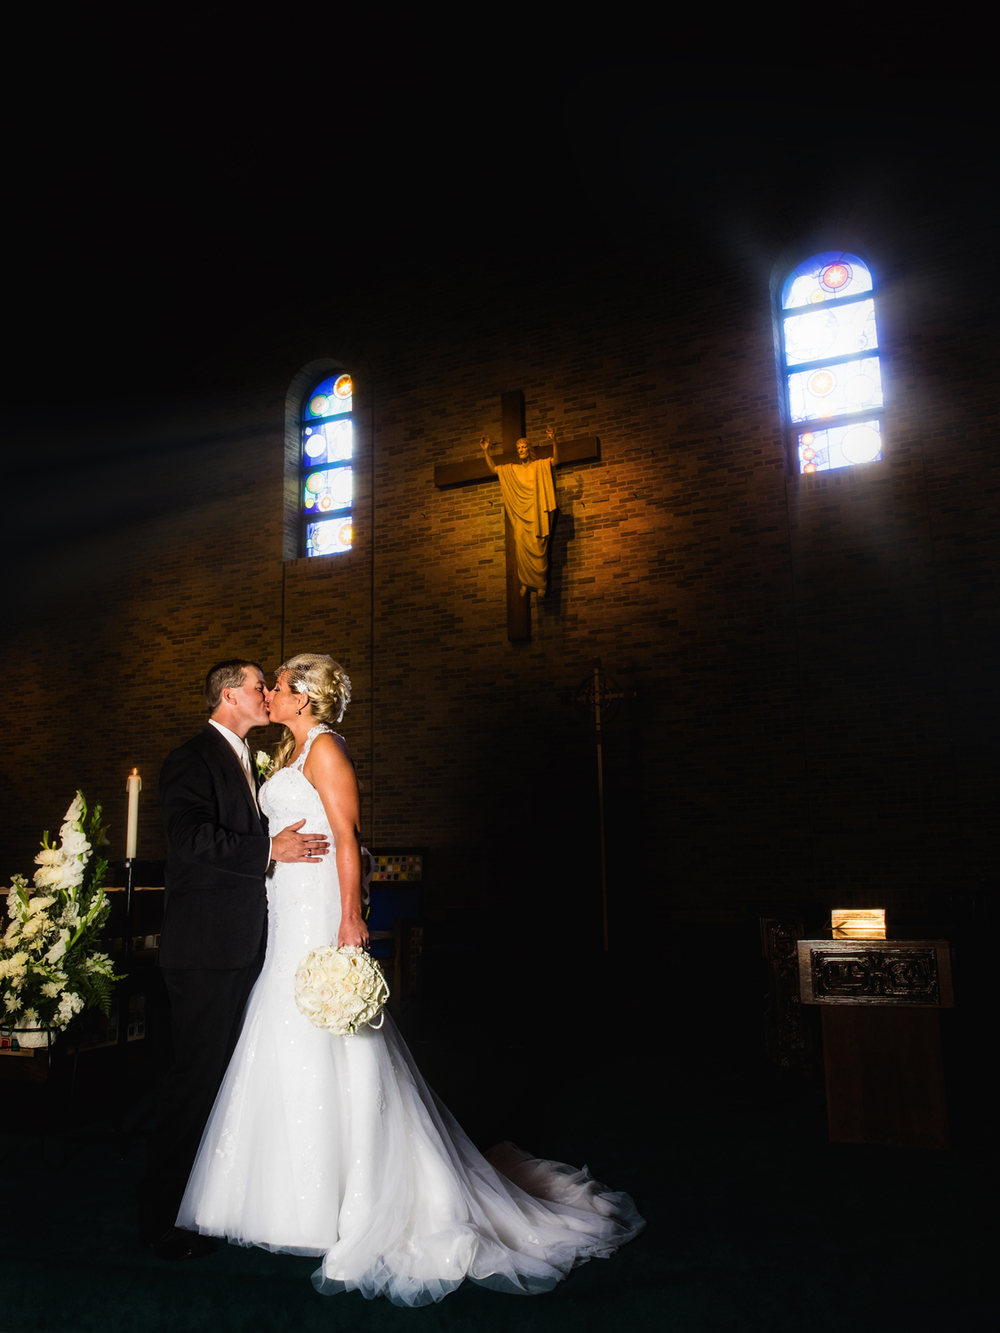 Bride and groom kiss on the altar.